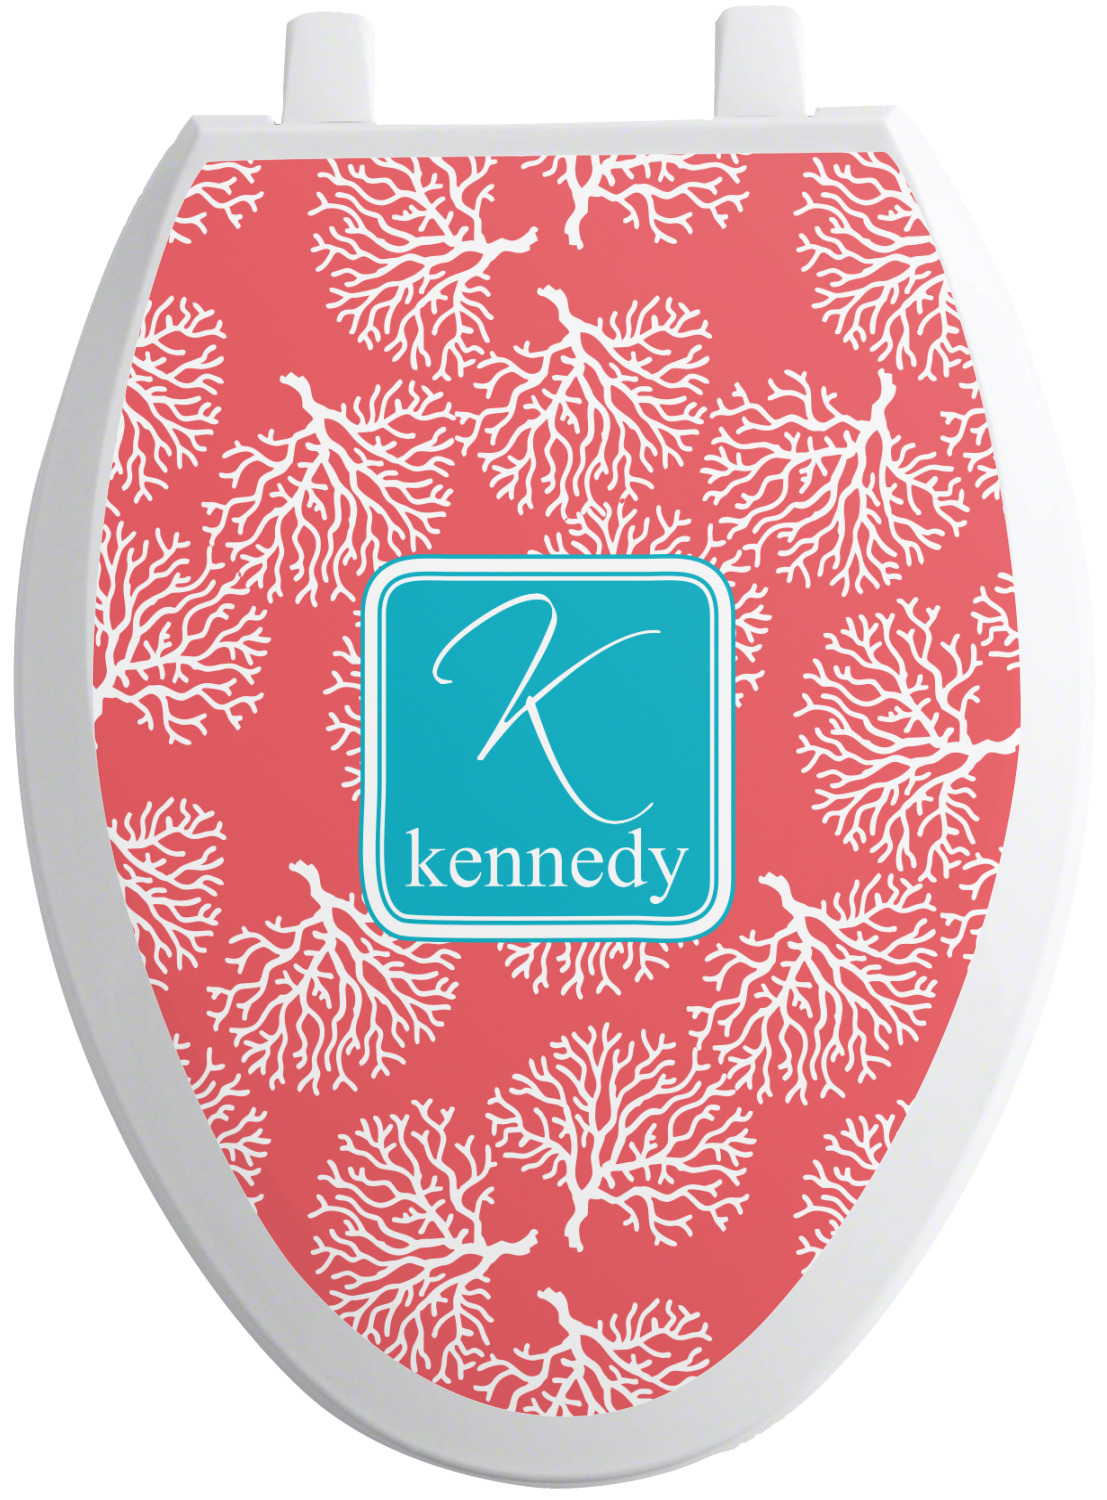 Coral Amp Teal Toilet Seat Decal Personalized Youcustomizeit